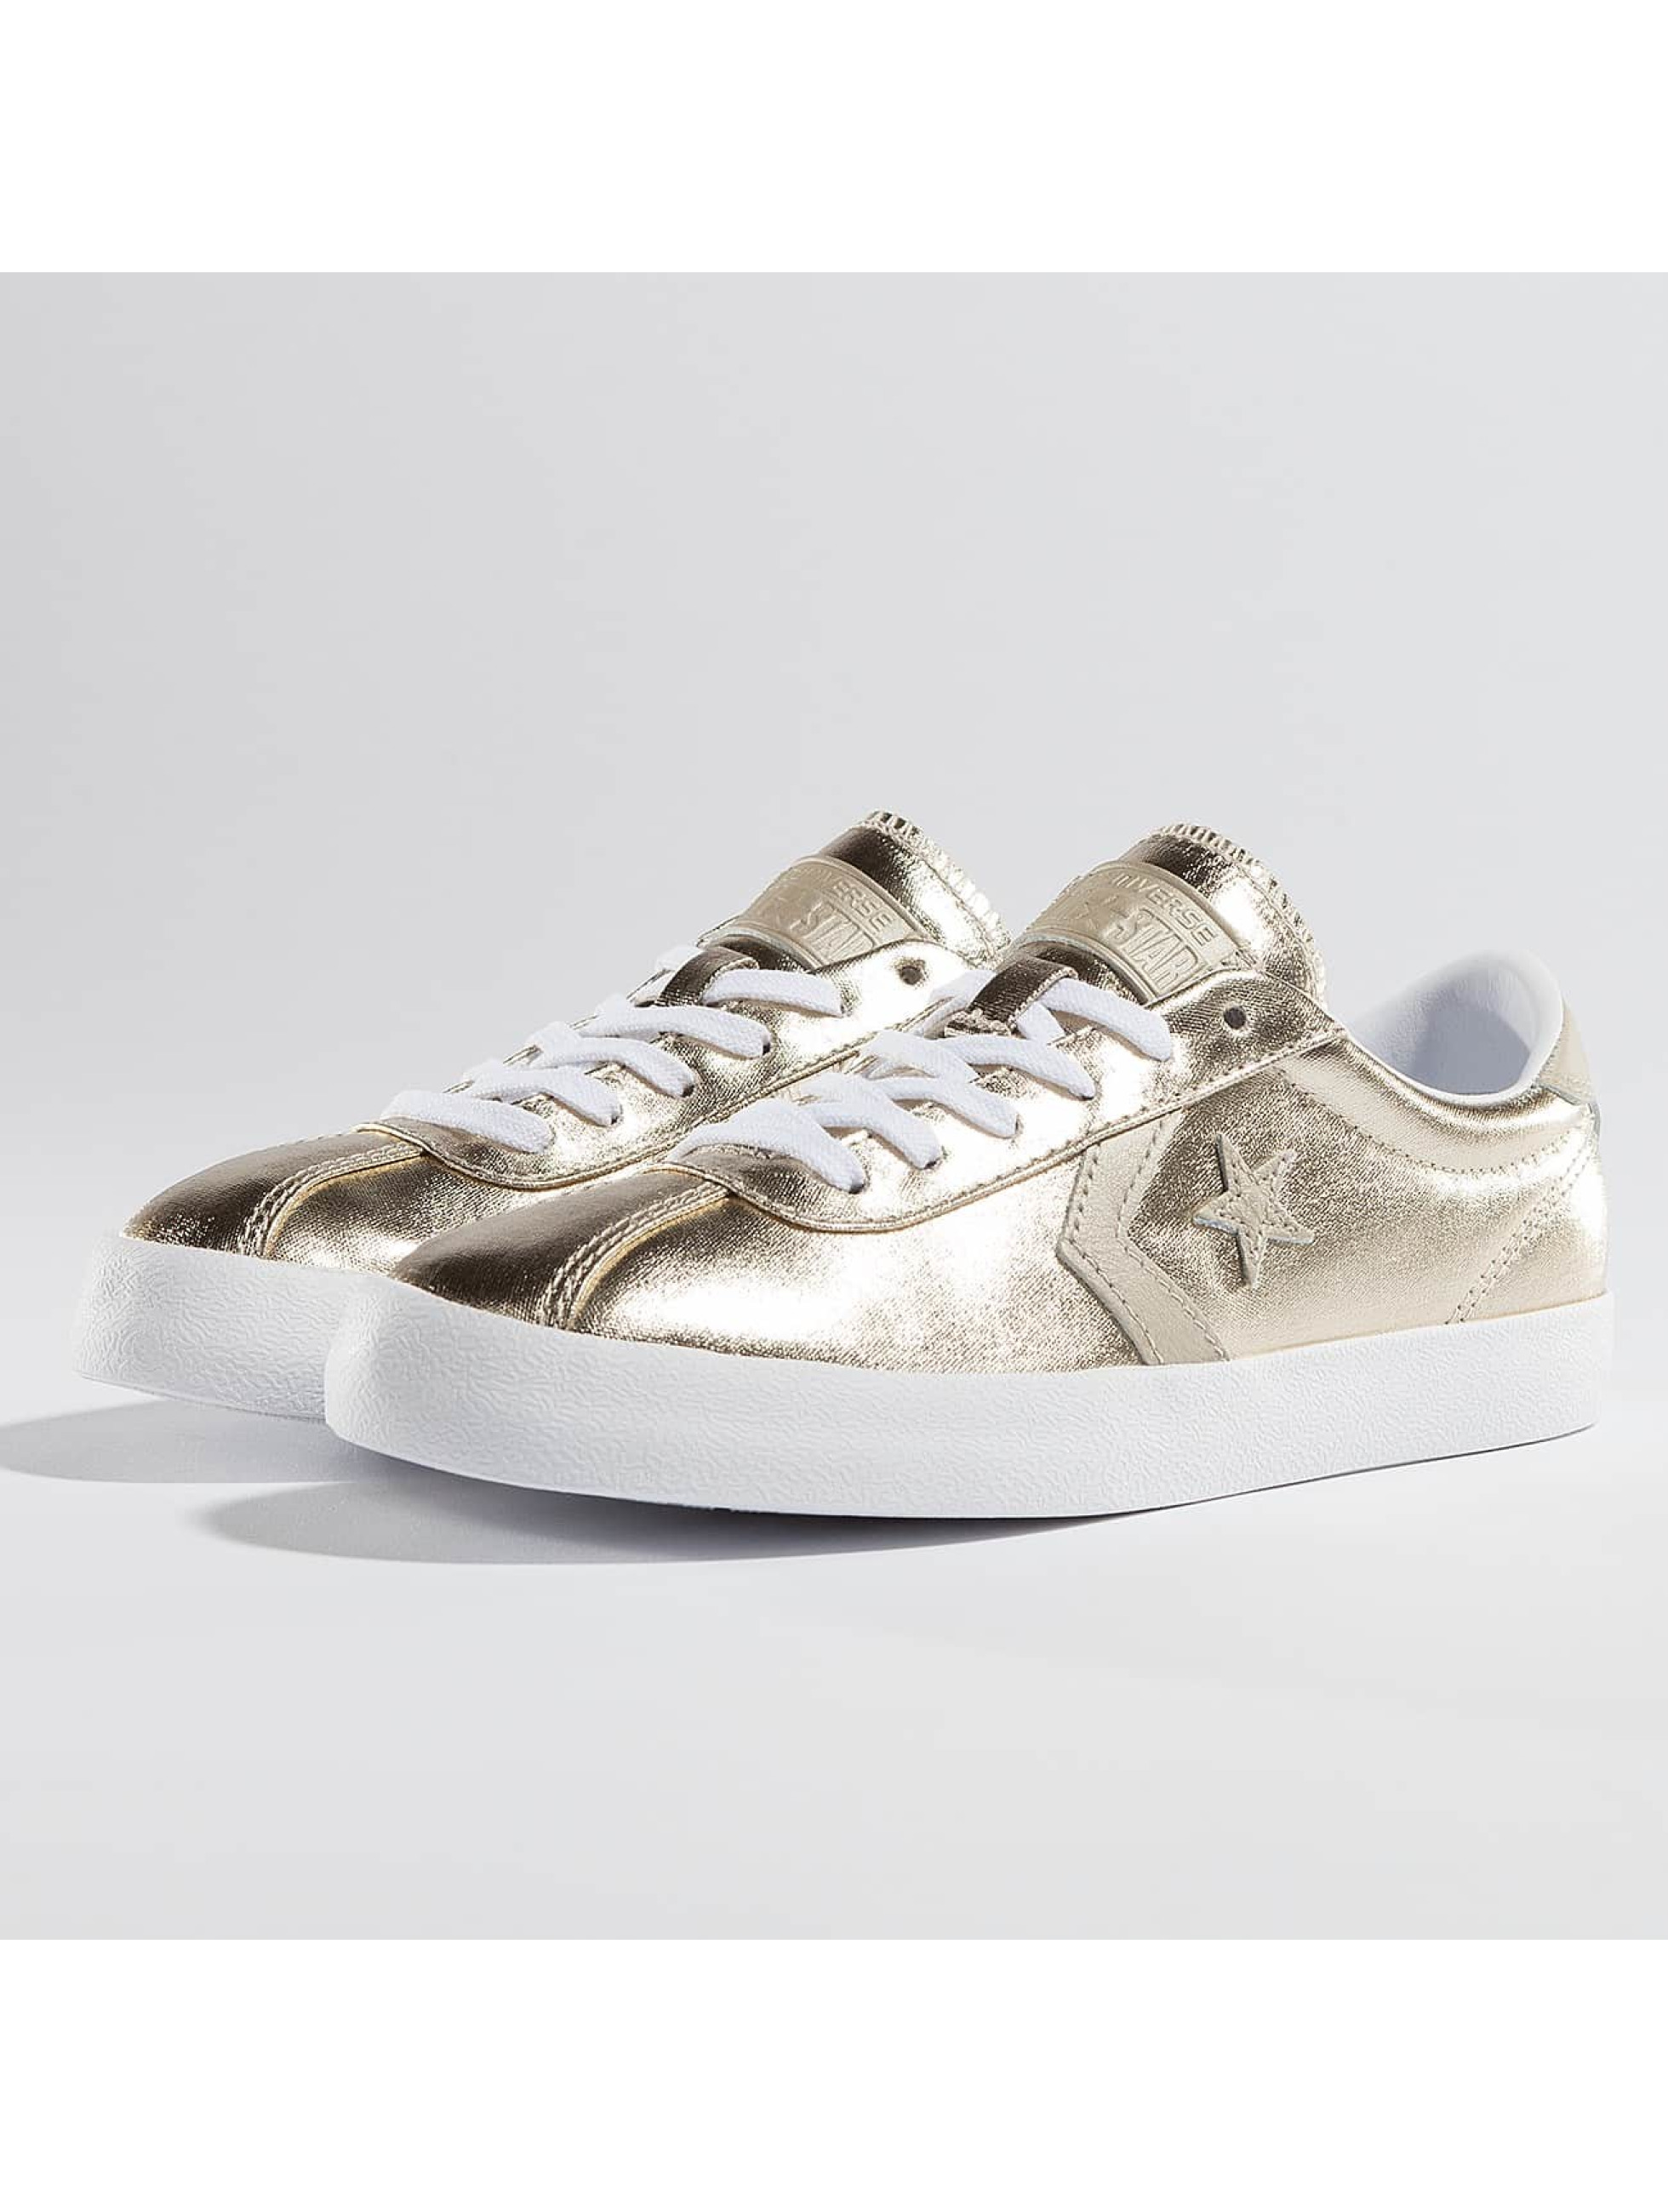 Sneaker Ox in goldfarben